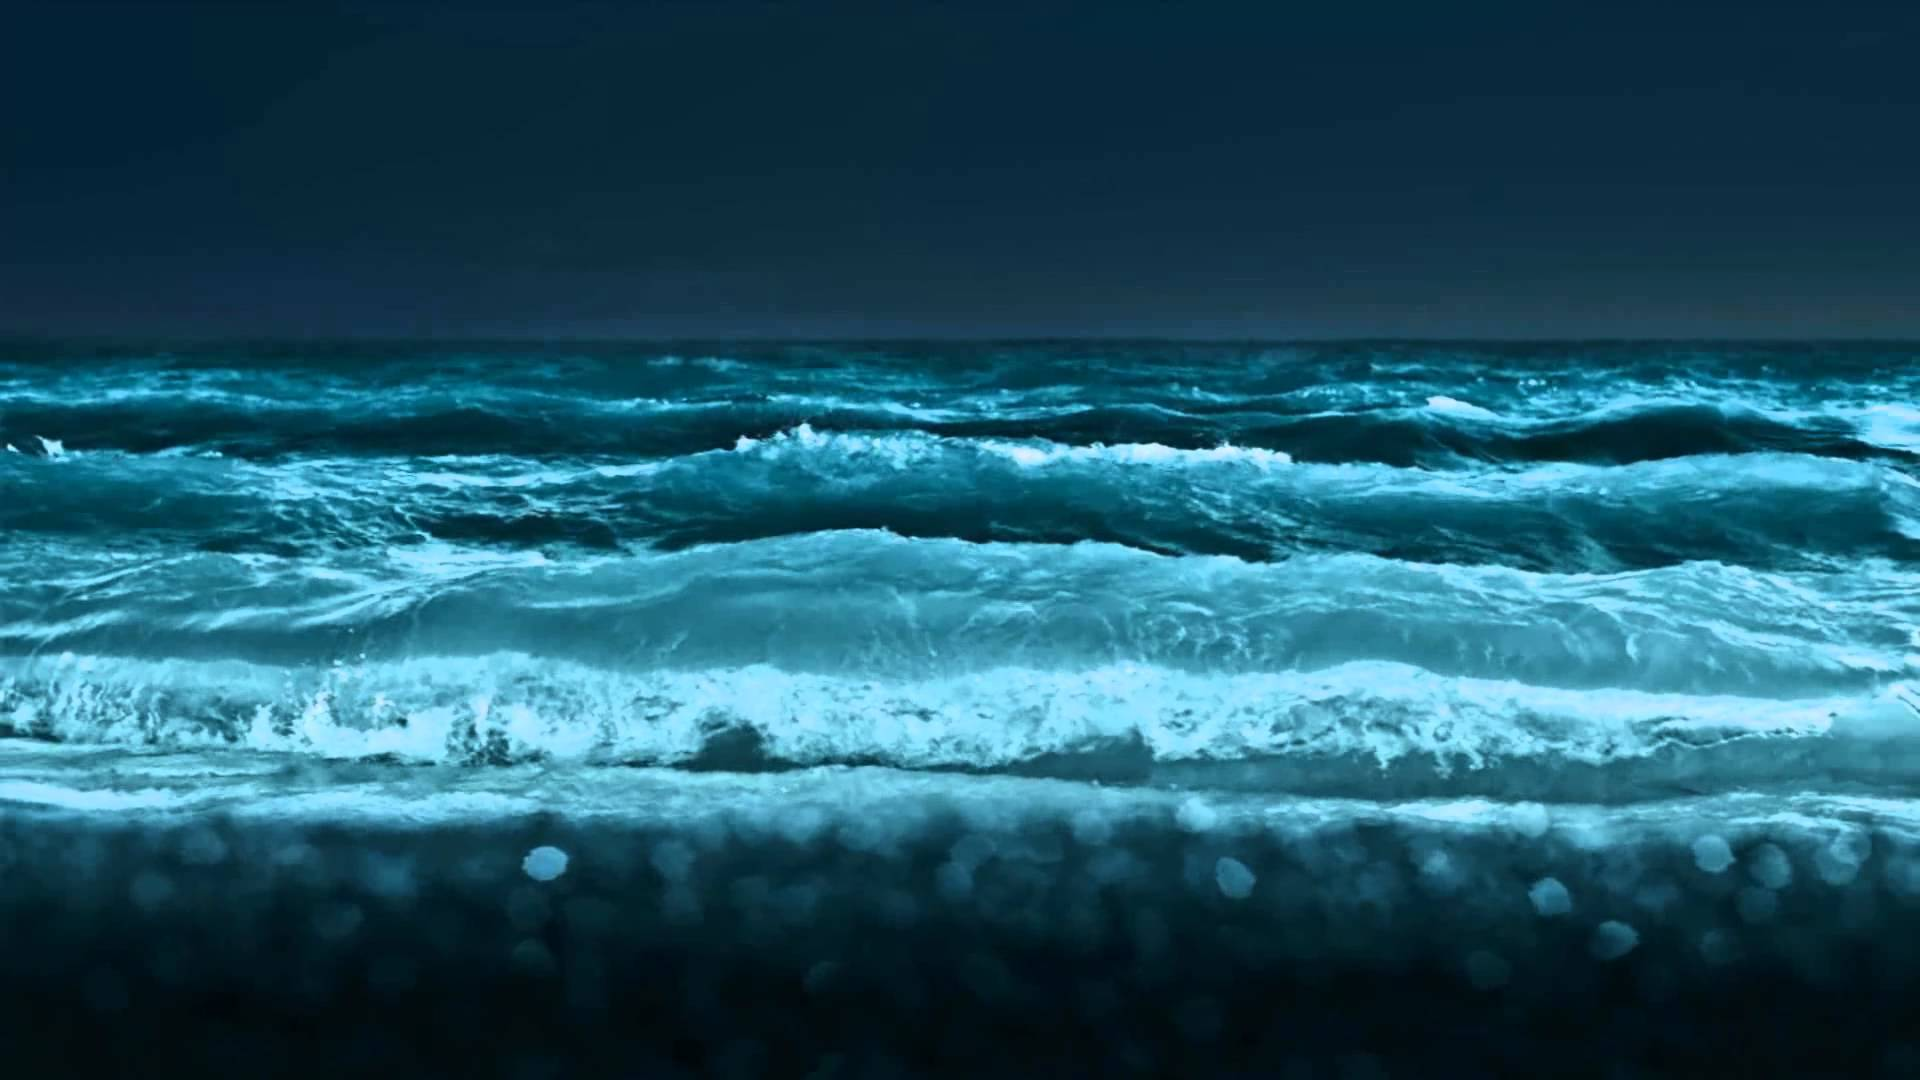 Moving Ocean Background 2